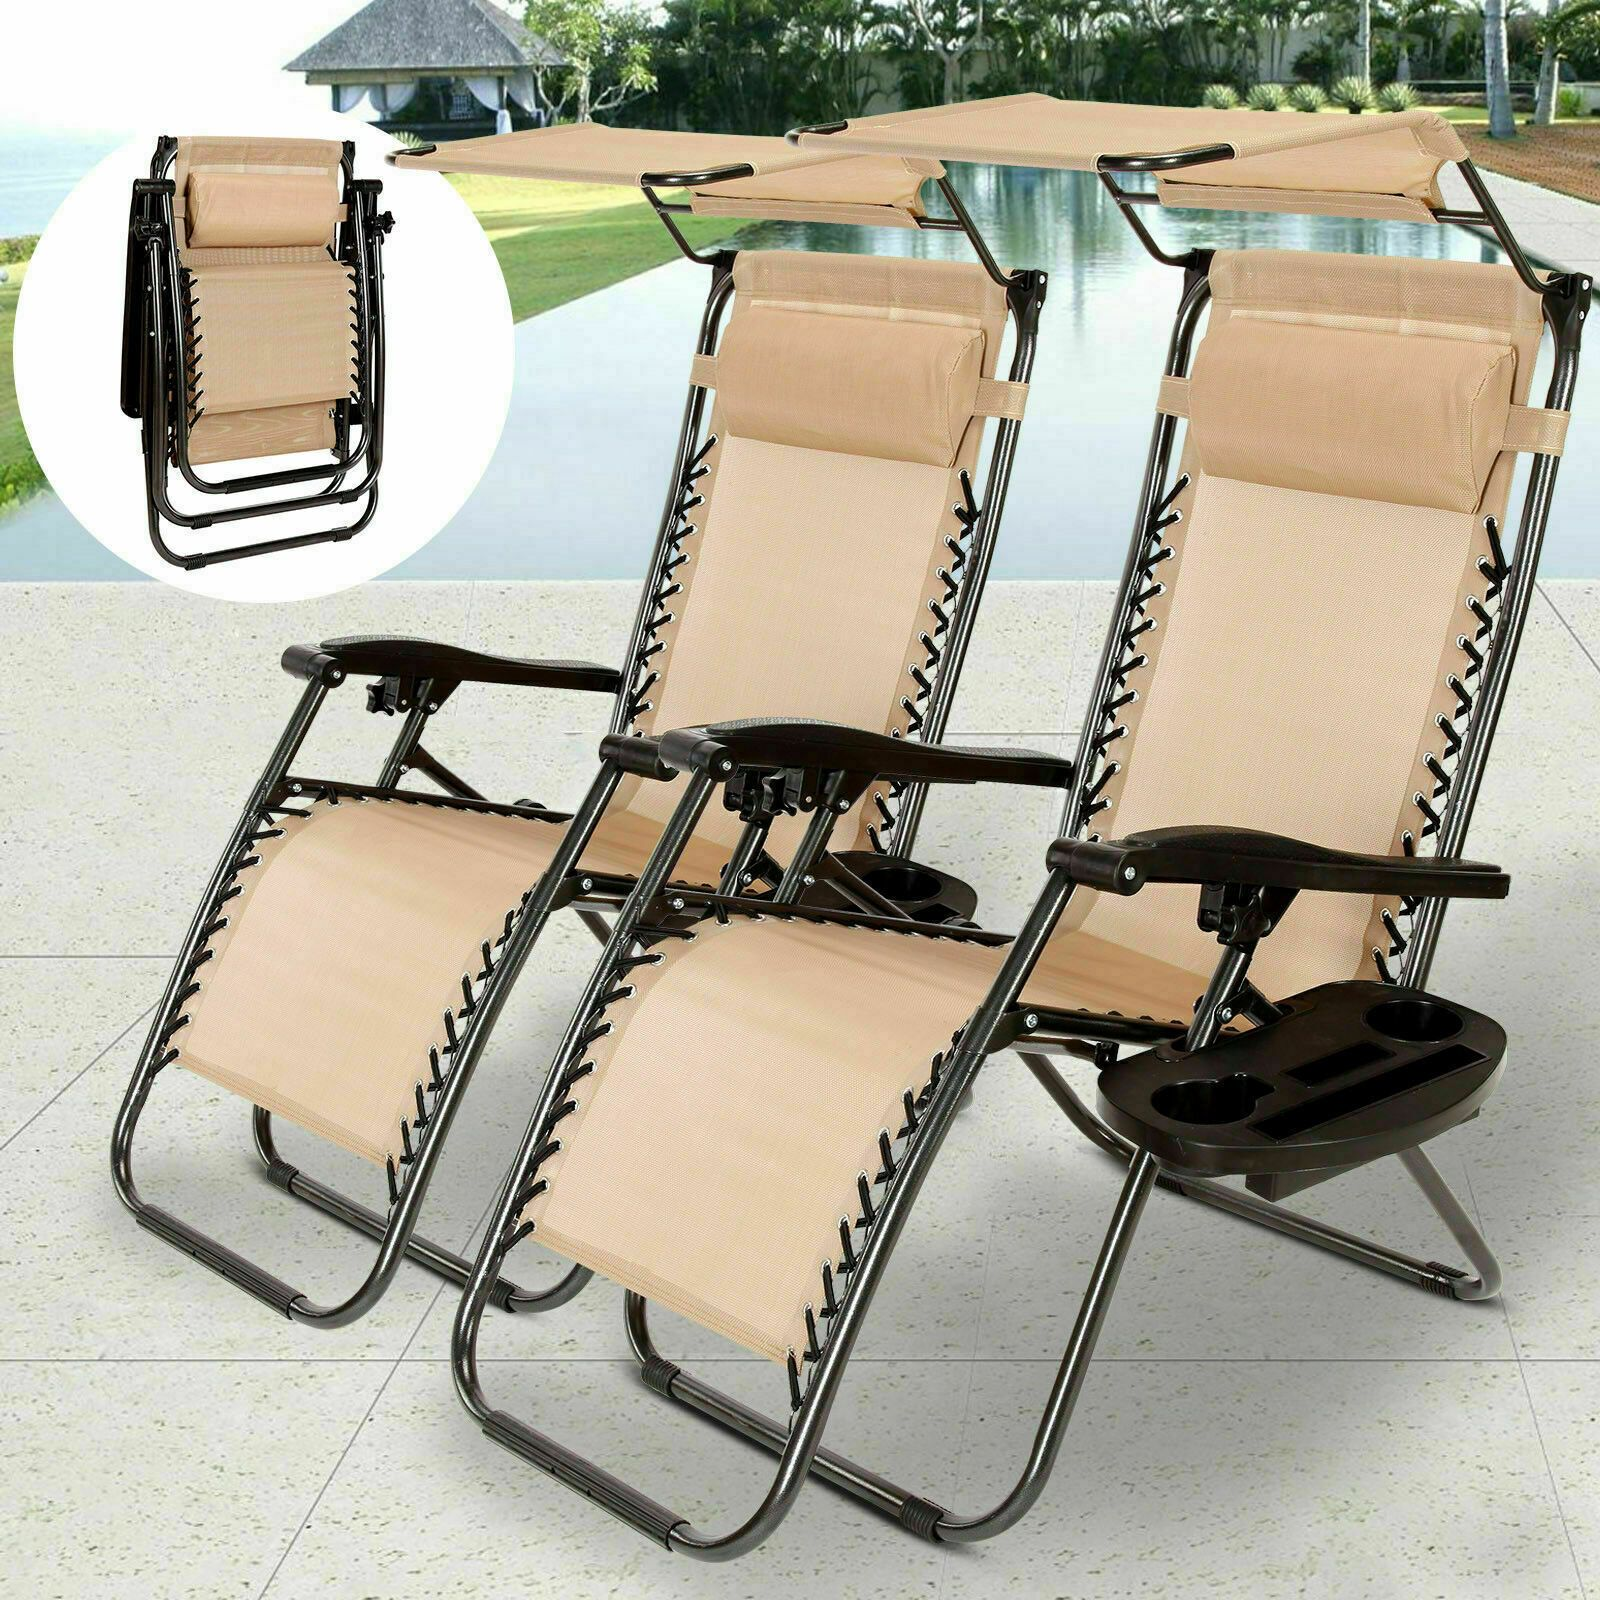 Details about New Folding Zero Gravity Lounge Chair Patio